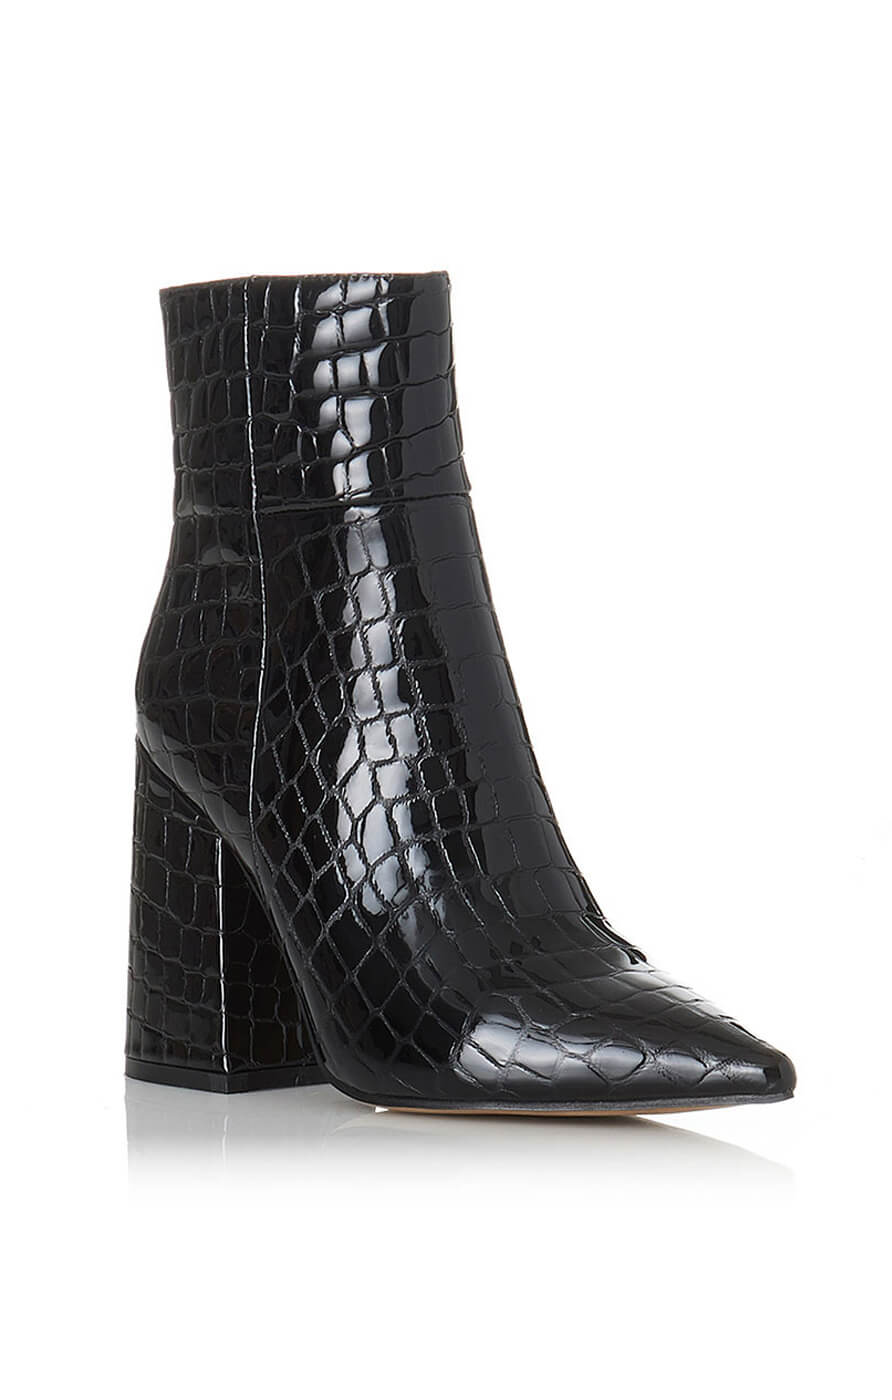 THE AHARA BOOT - BLACK CROC PATENT